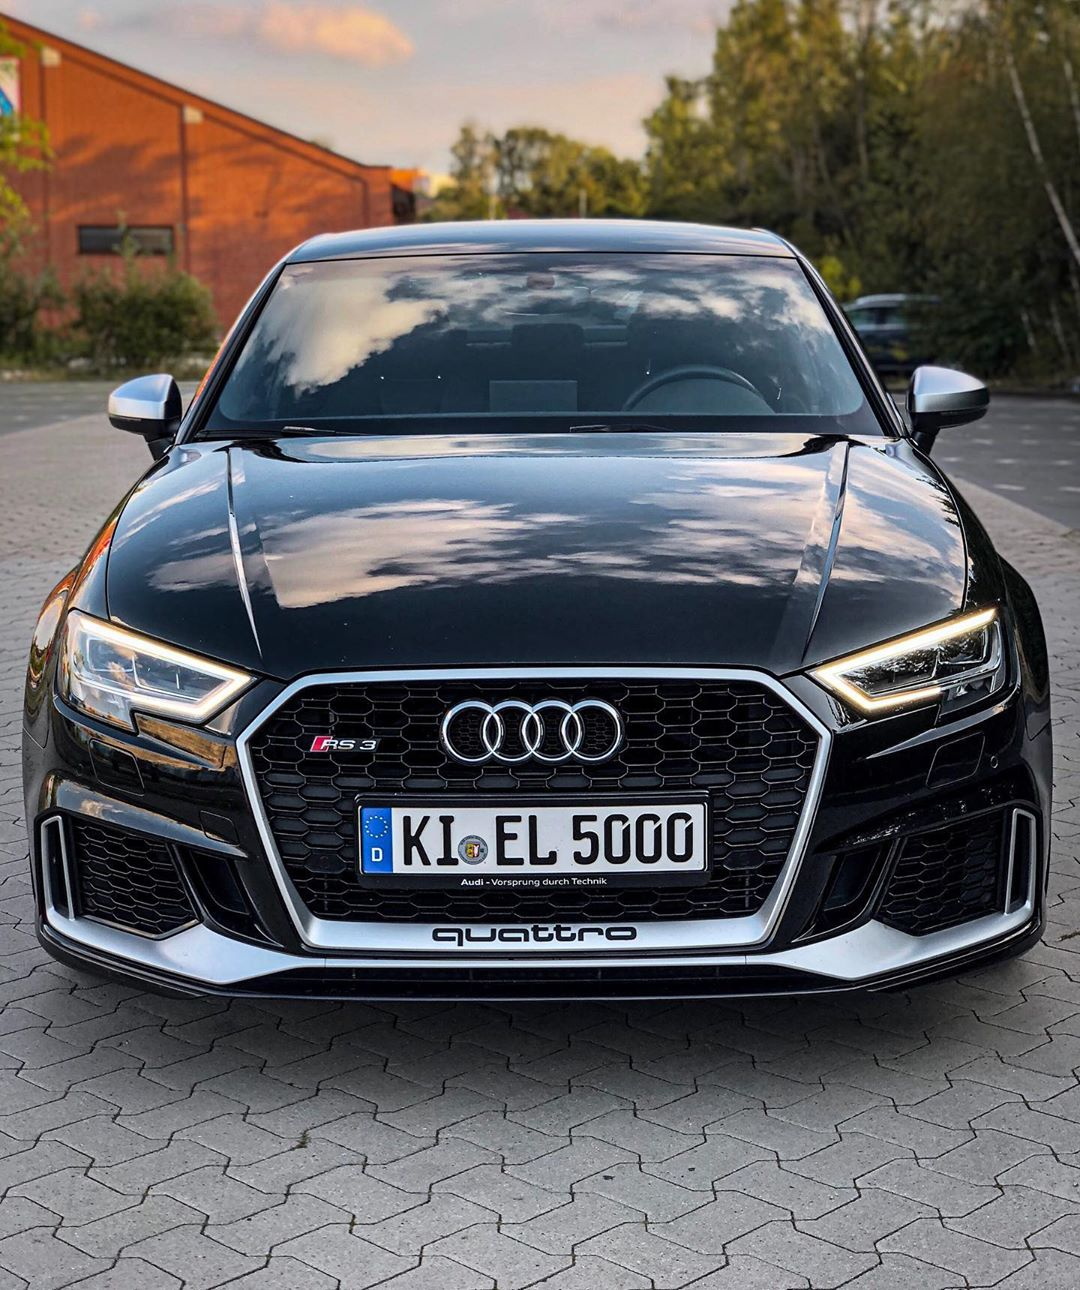 The time with our RS3 is almost over😢….have to return it to Audi soon😨….such a great car😍 #Audi rs#audi #audisport #rs3 #rs3limousine #rs3sedan #rs38v #pantherschwarz #pantherblack #blackbeauty #blackpanther #automannsgarage #automanntv